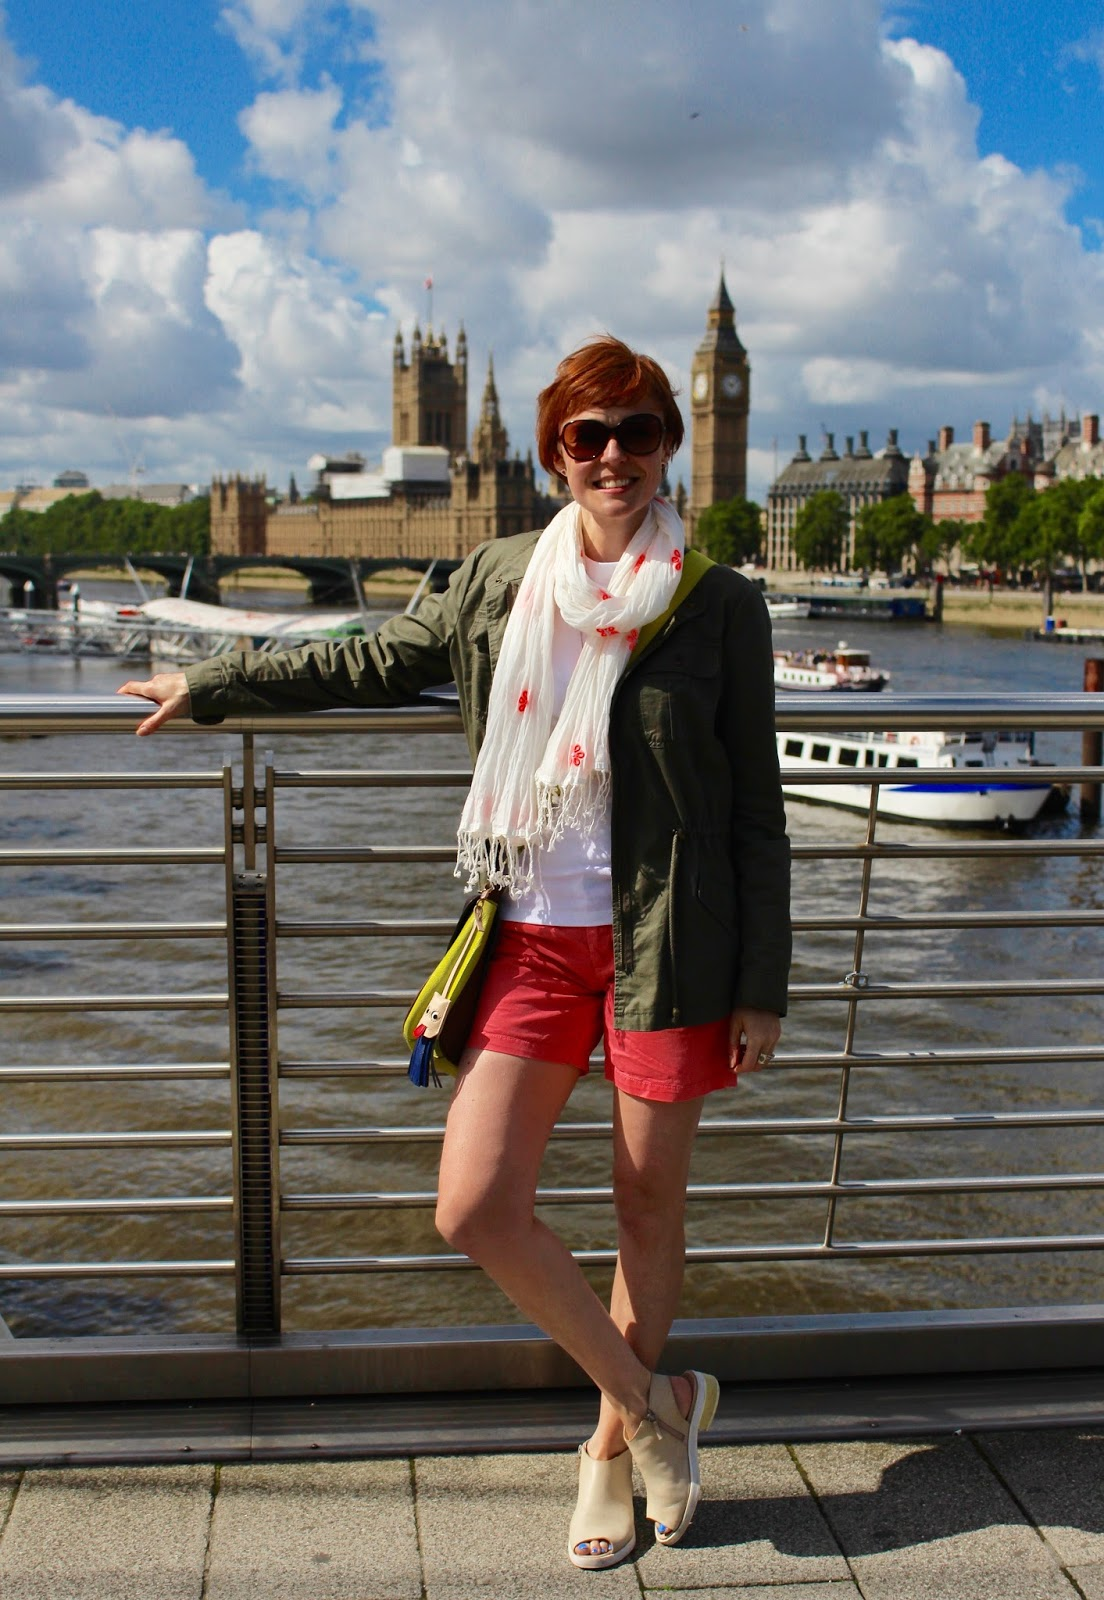 Fake Fabulous | What to wear for a sightseeing trip to London.